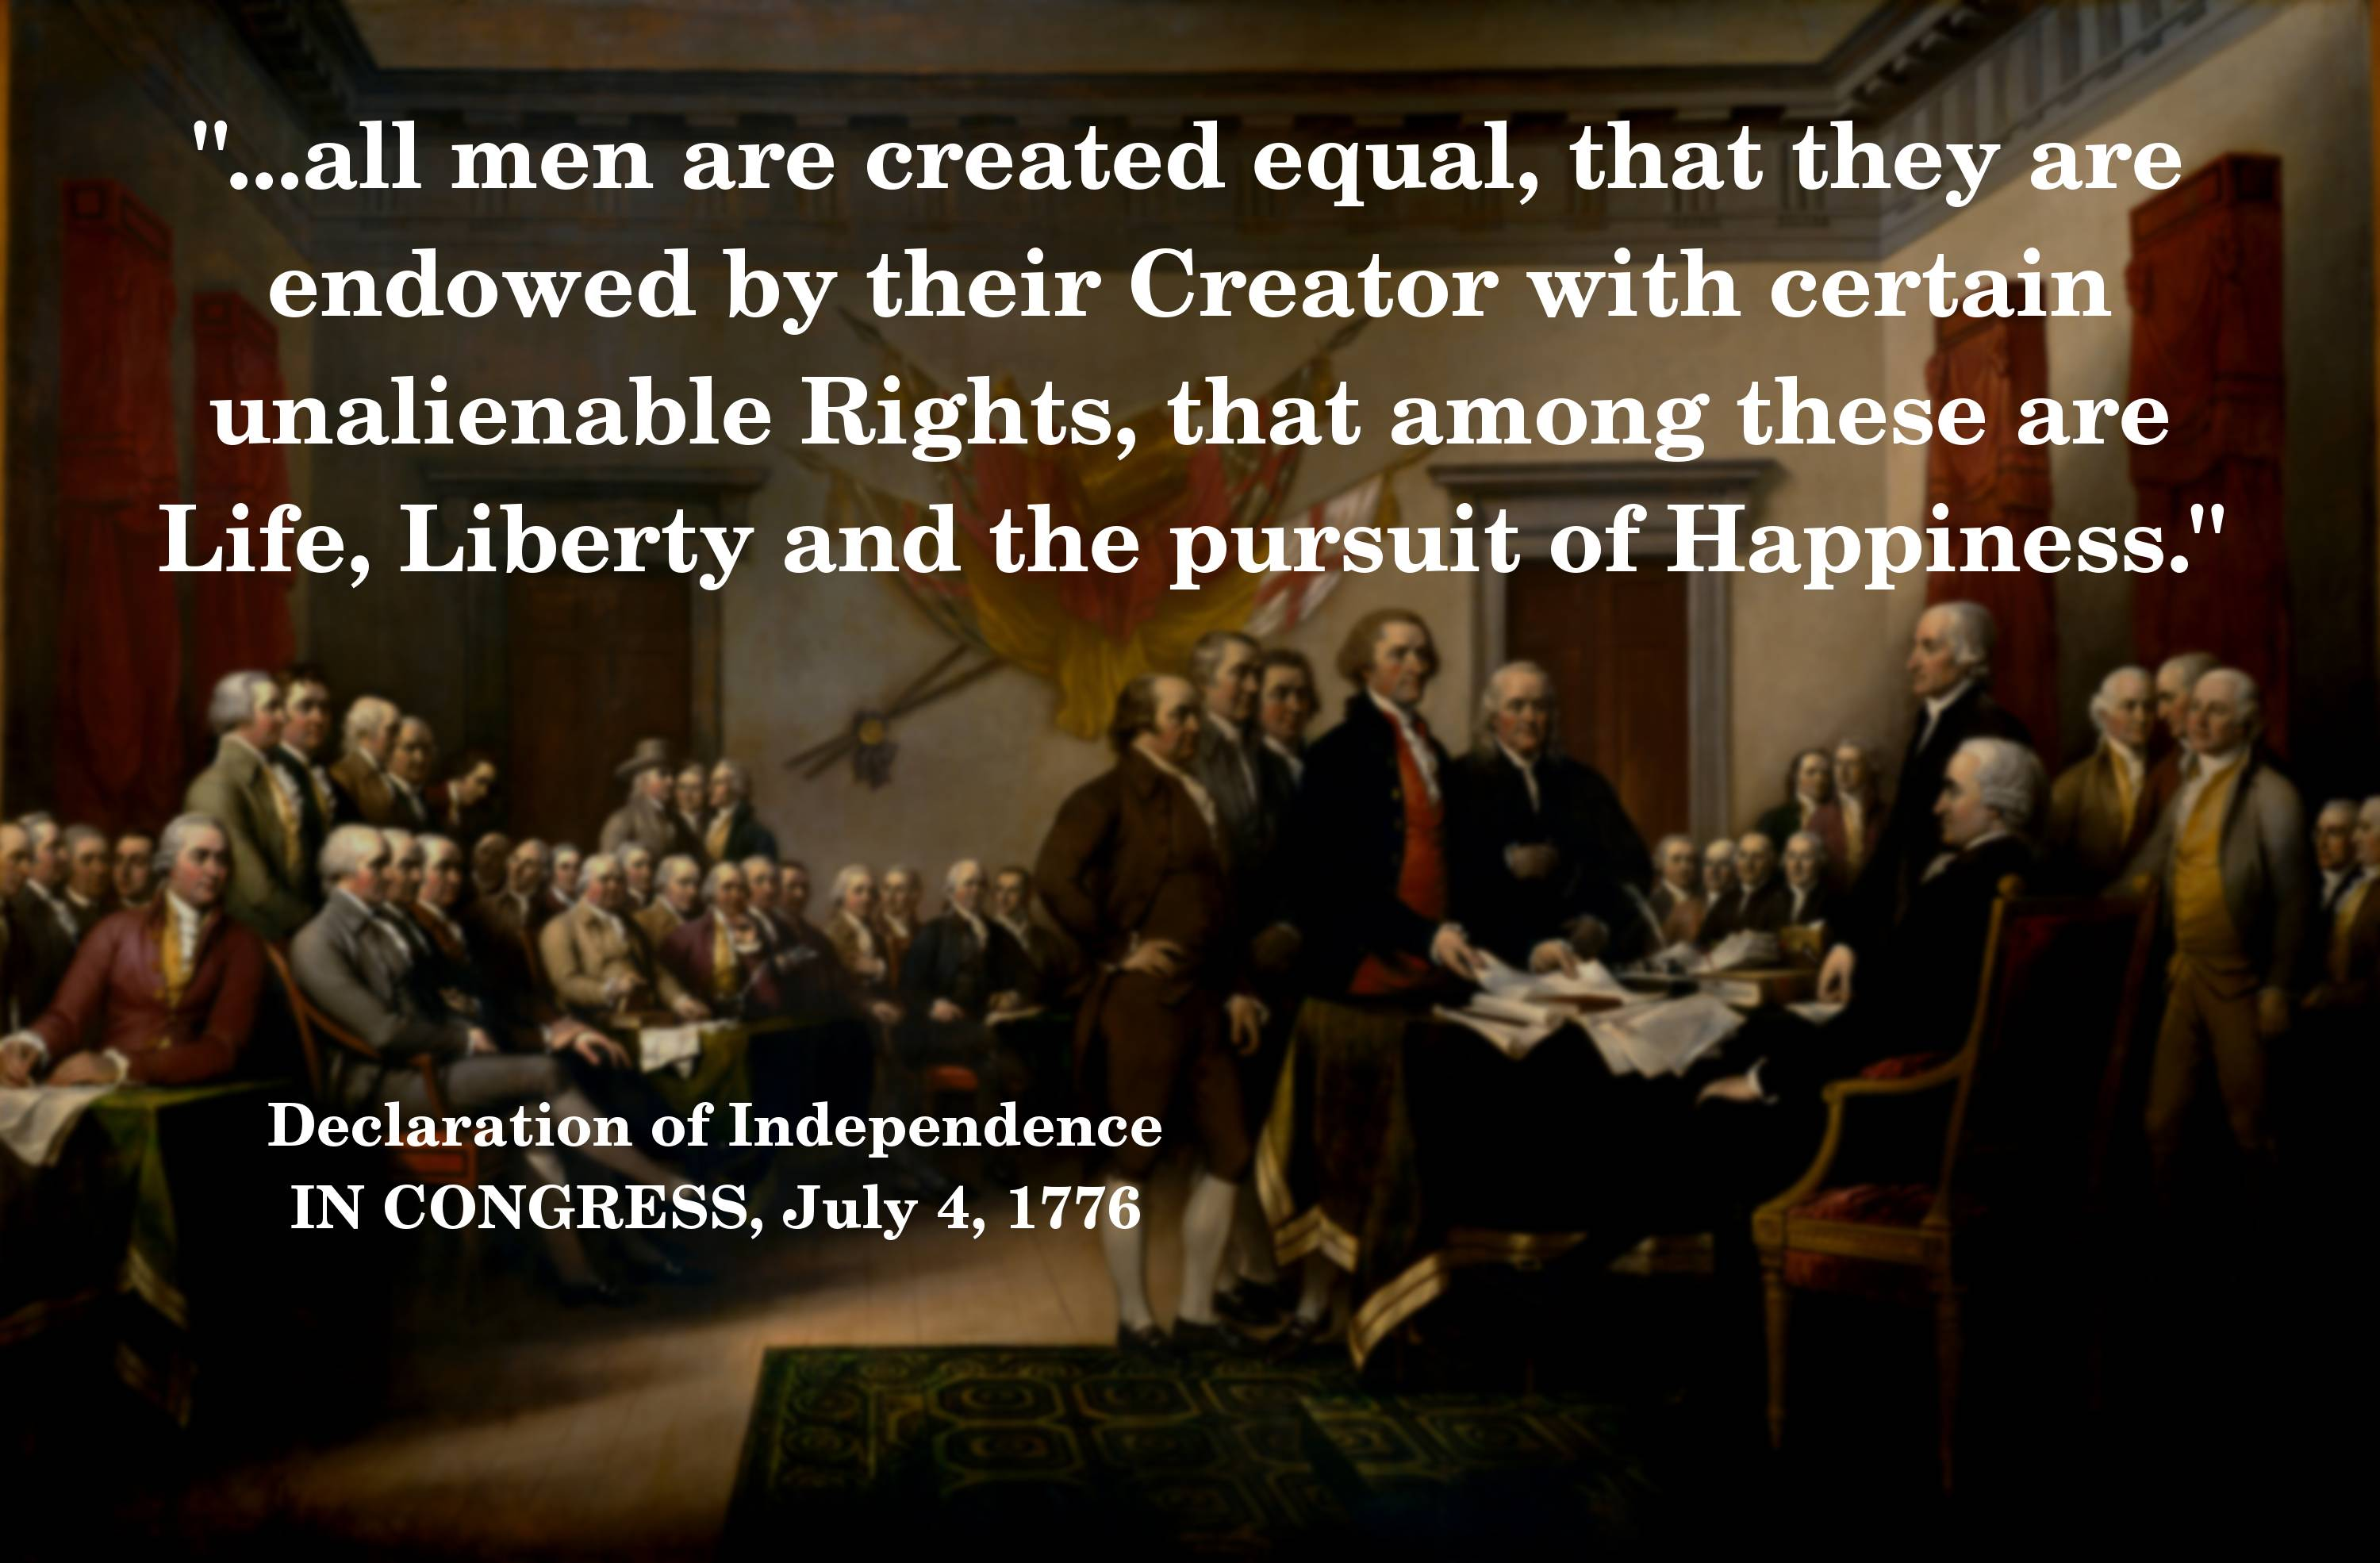 all men are created equal in the united states declaration of independence The declaration of independence contains the clearest what we call the declaration of independence--the unanimous declaration of the thirteen united states of america--is, in fact if all men are created equal--ie.